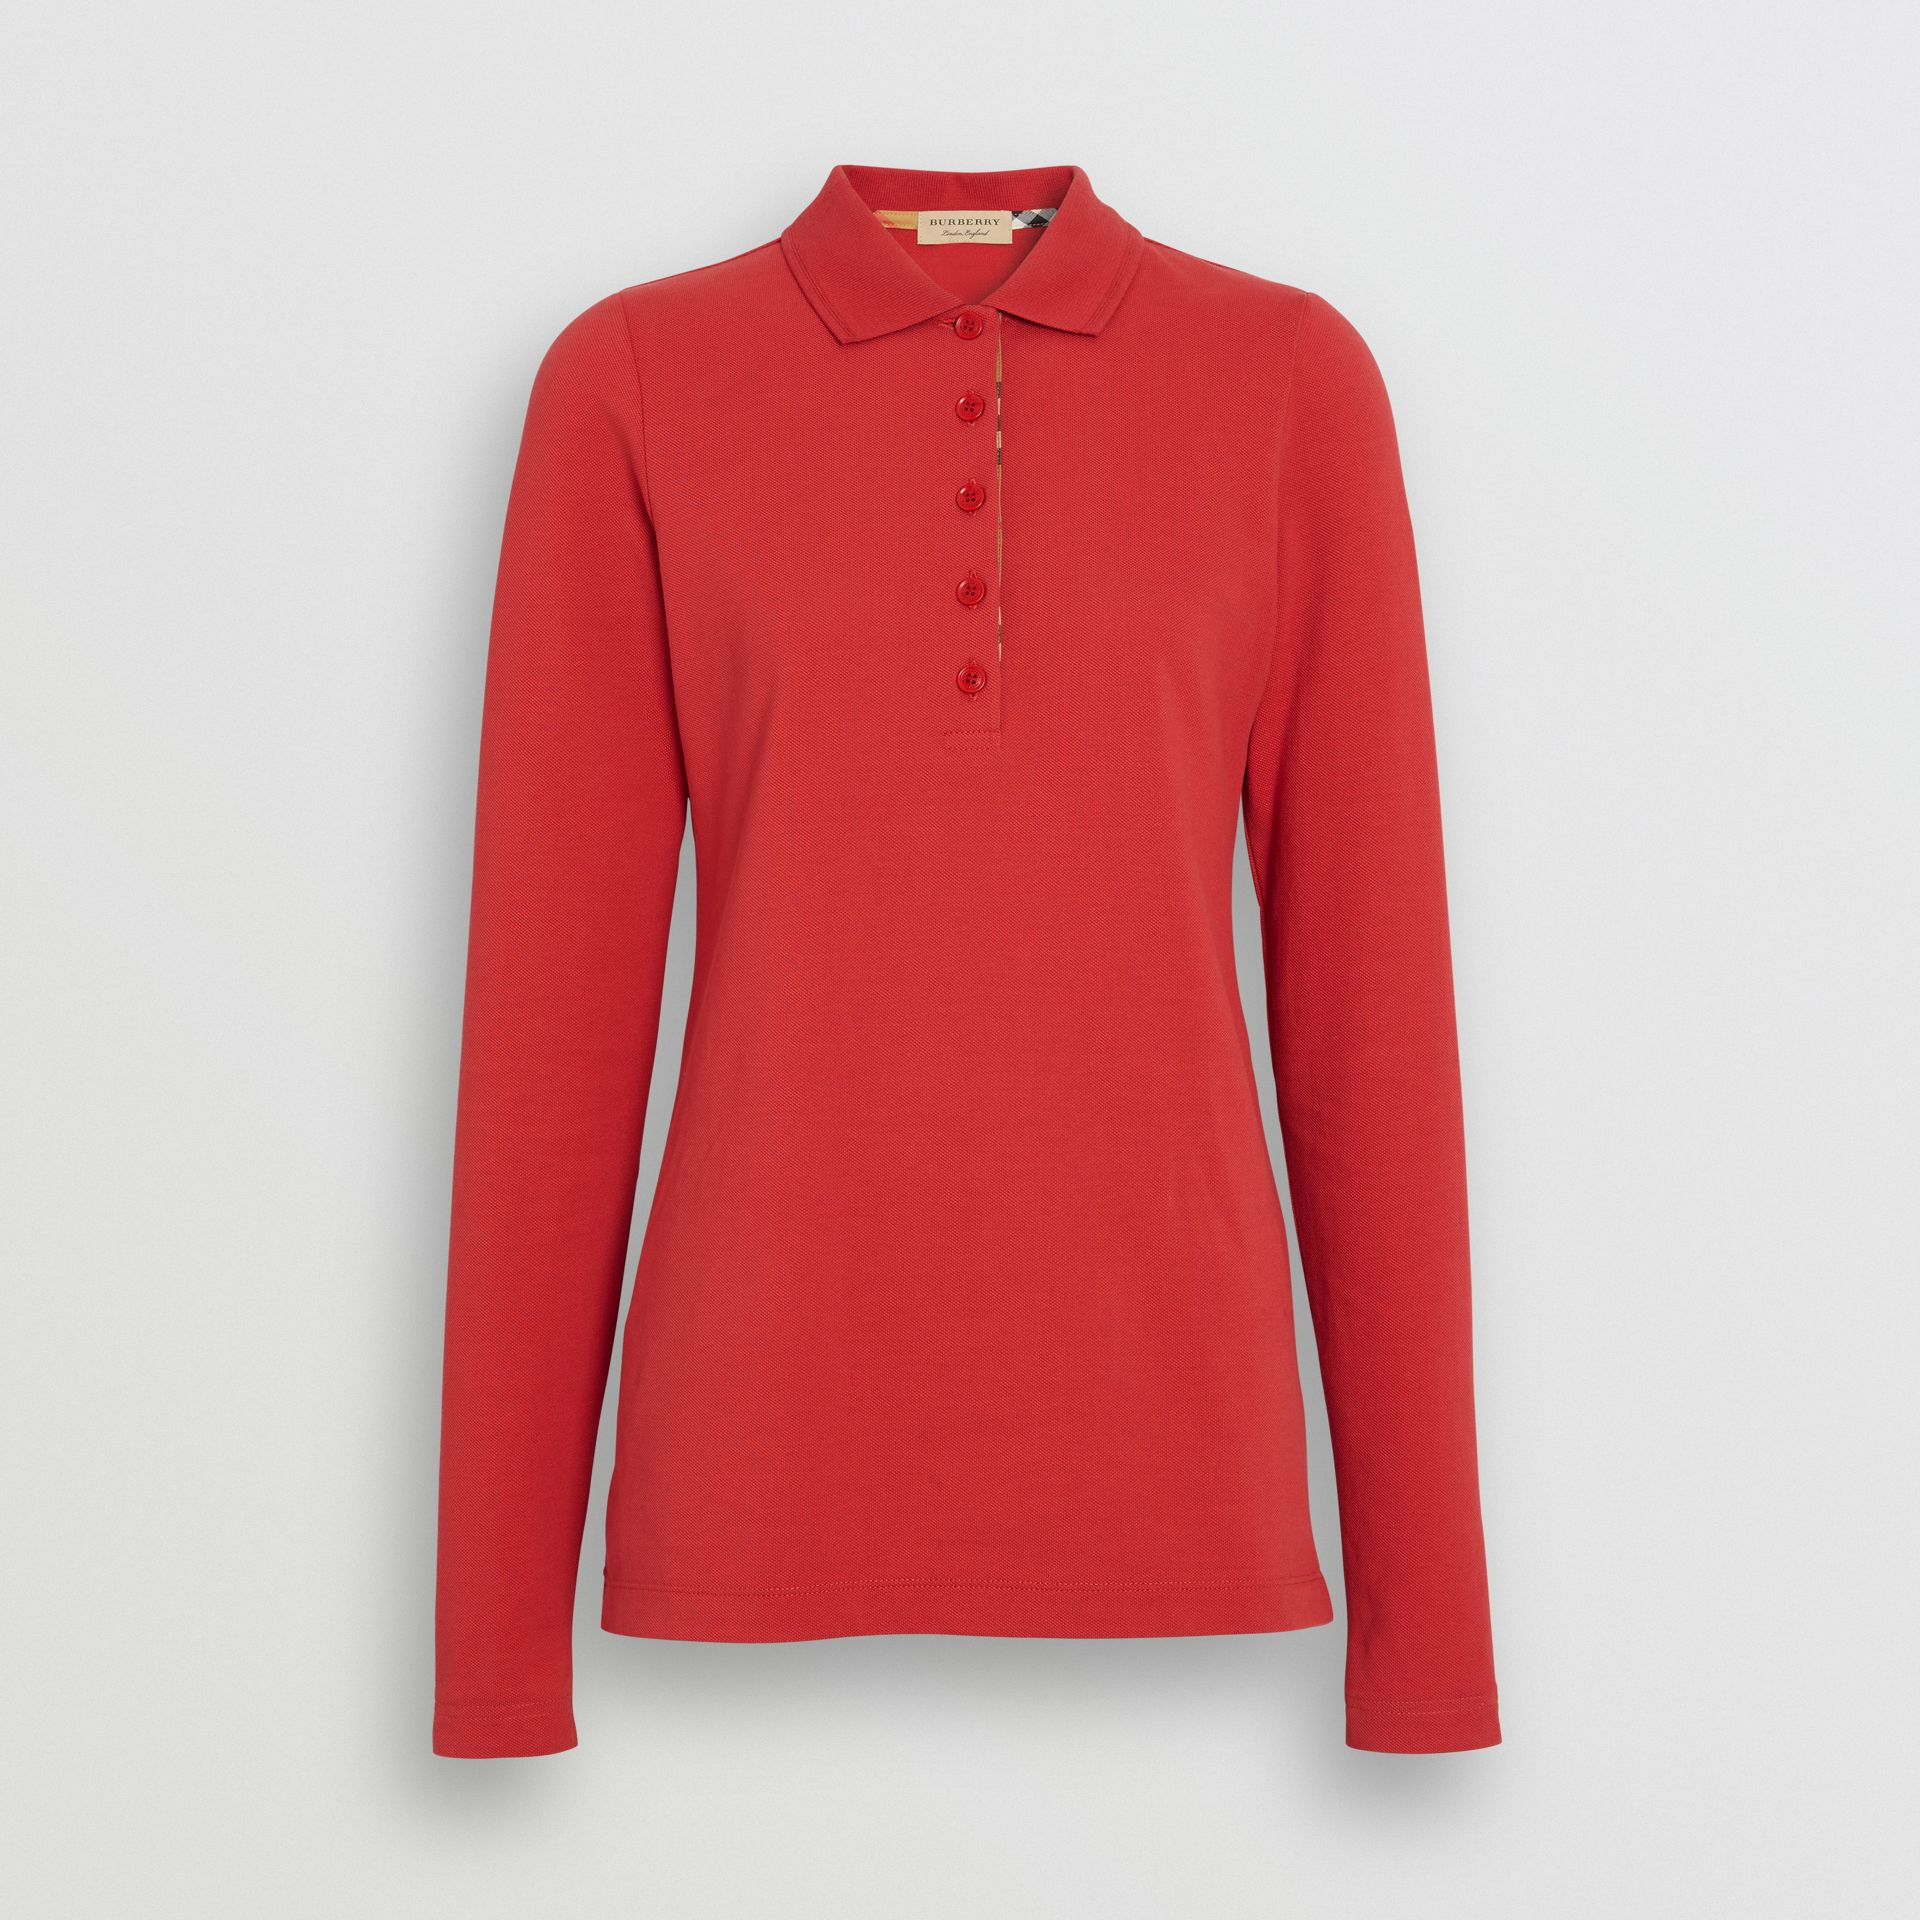 Long-sleeve Check Placket Cotton Piqué Polo Shirt in Bright Red - Women | Burberry - gallery image 3